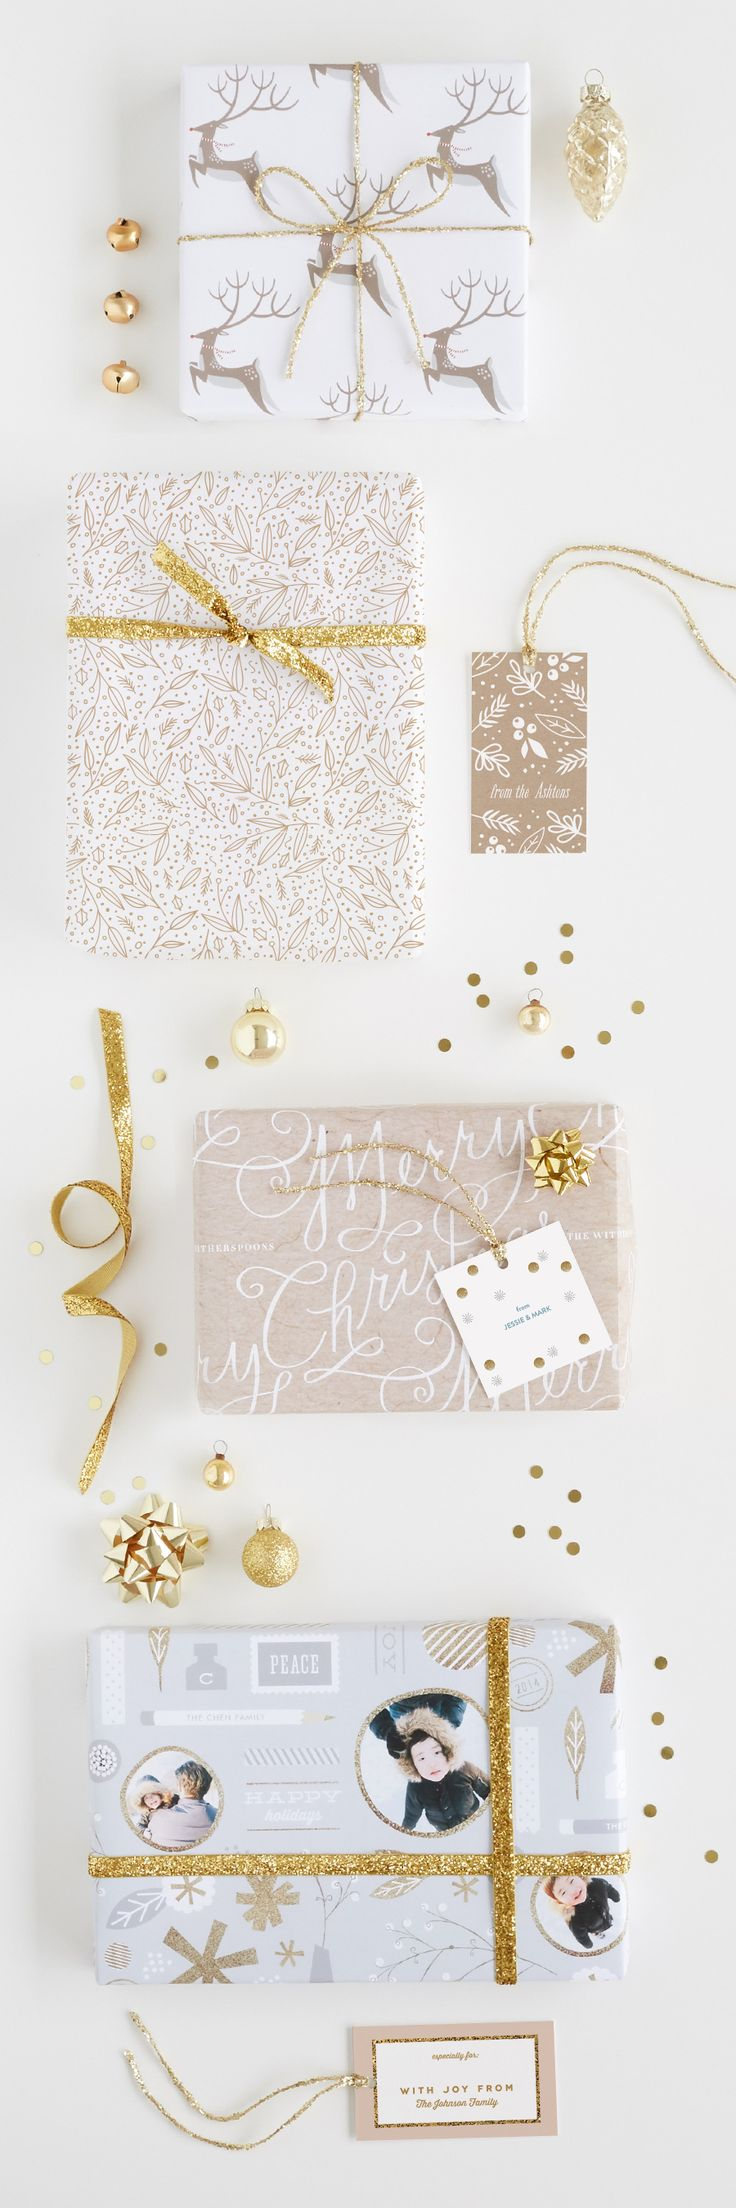 Gold Holiday Gift Wrap Inspiration. Get you full gift wrap guide on Minted.com